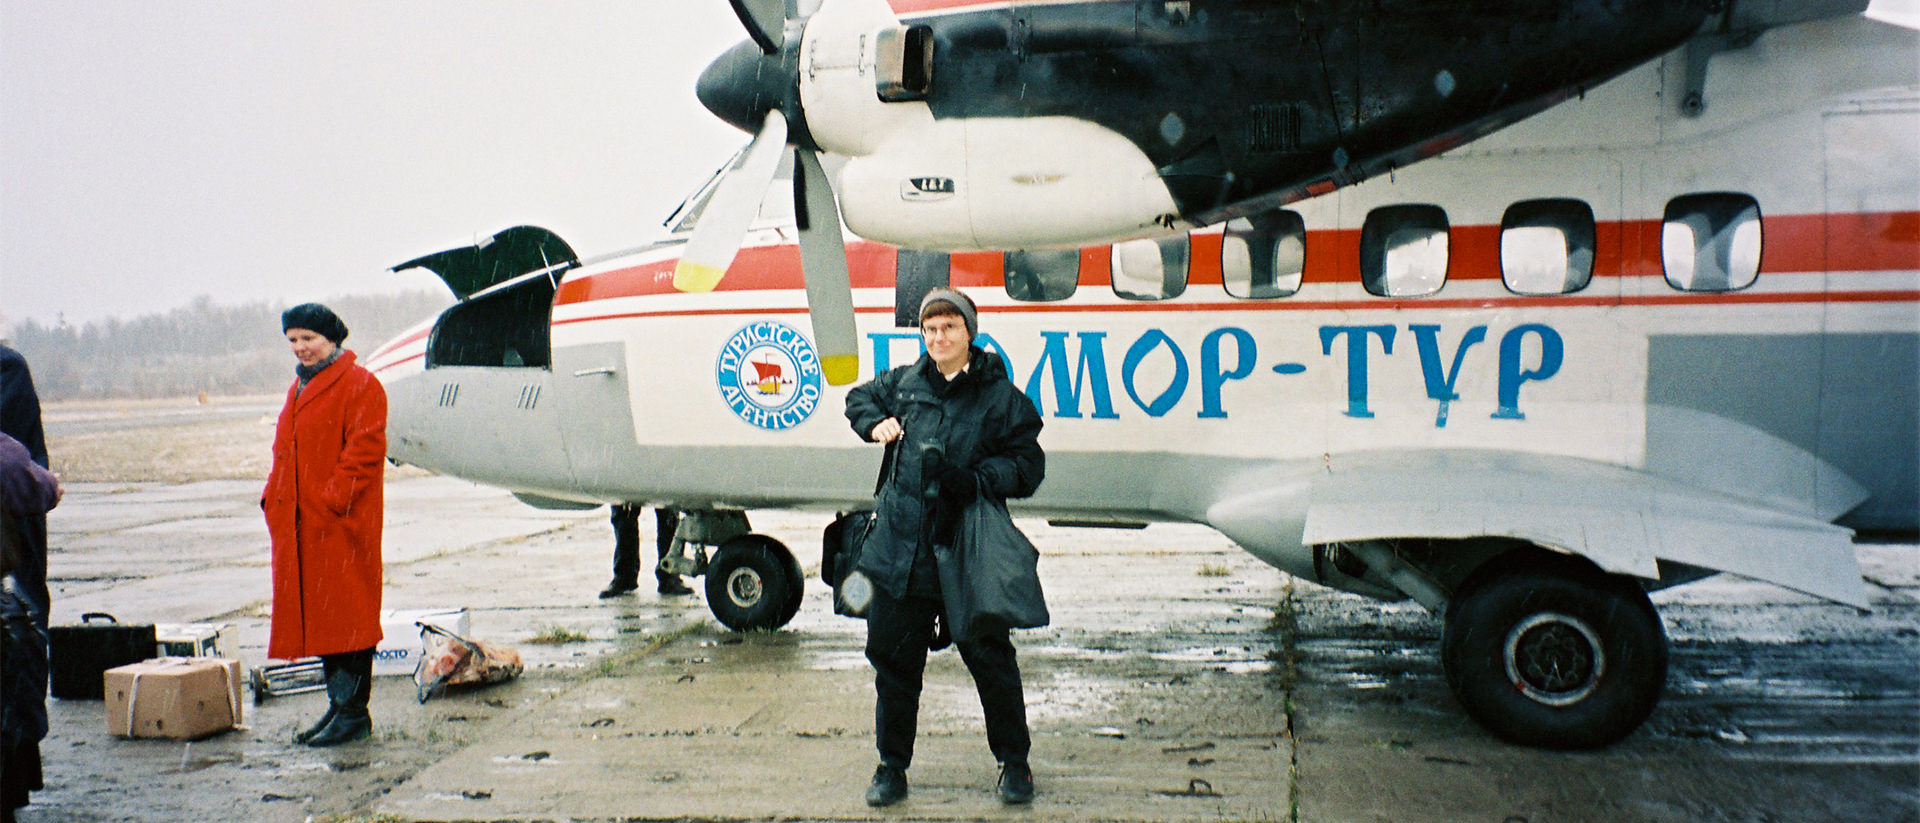 Lynne Viola stands next to a single-engine propeller plane during a research trip to Russia